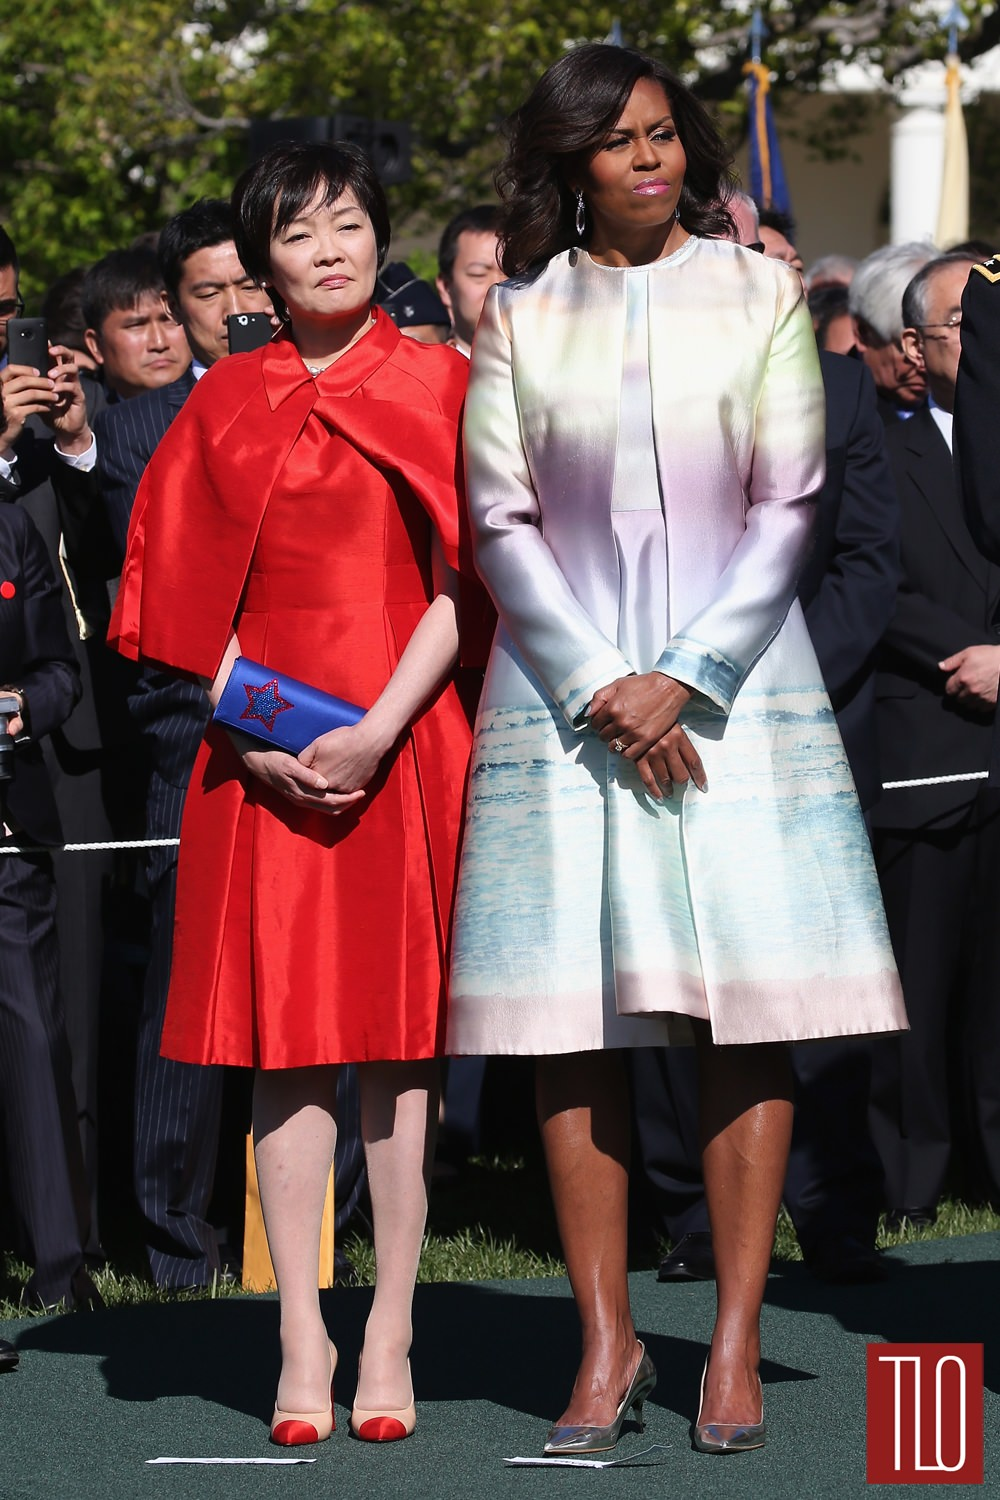 Michelle-Obama-Japanese-Prime-Minister-Shinzo-Abe-Akie-Abe-White-House-Visit-Monique-Luhillier-Fashion-Tom-Lorenzo-Site-TLO (1)